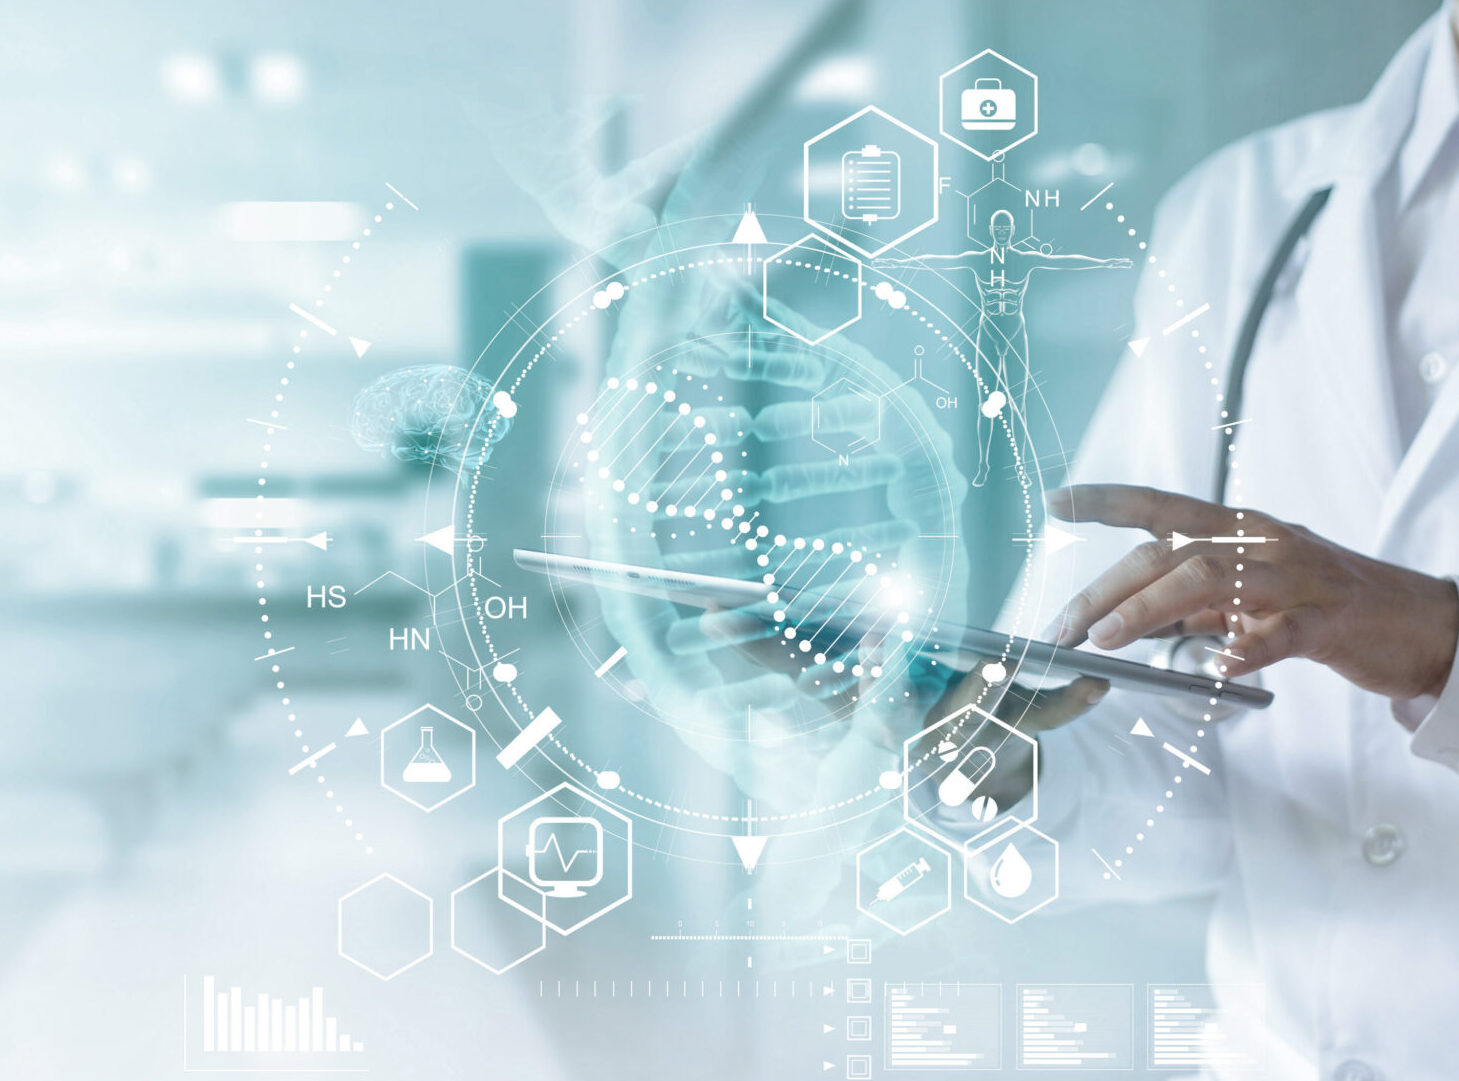 What's next for remote patient monitoring technology?